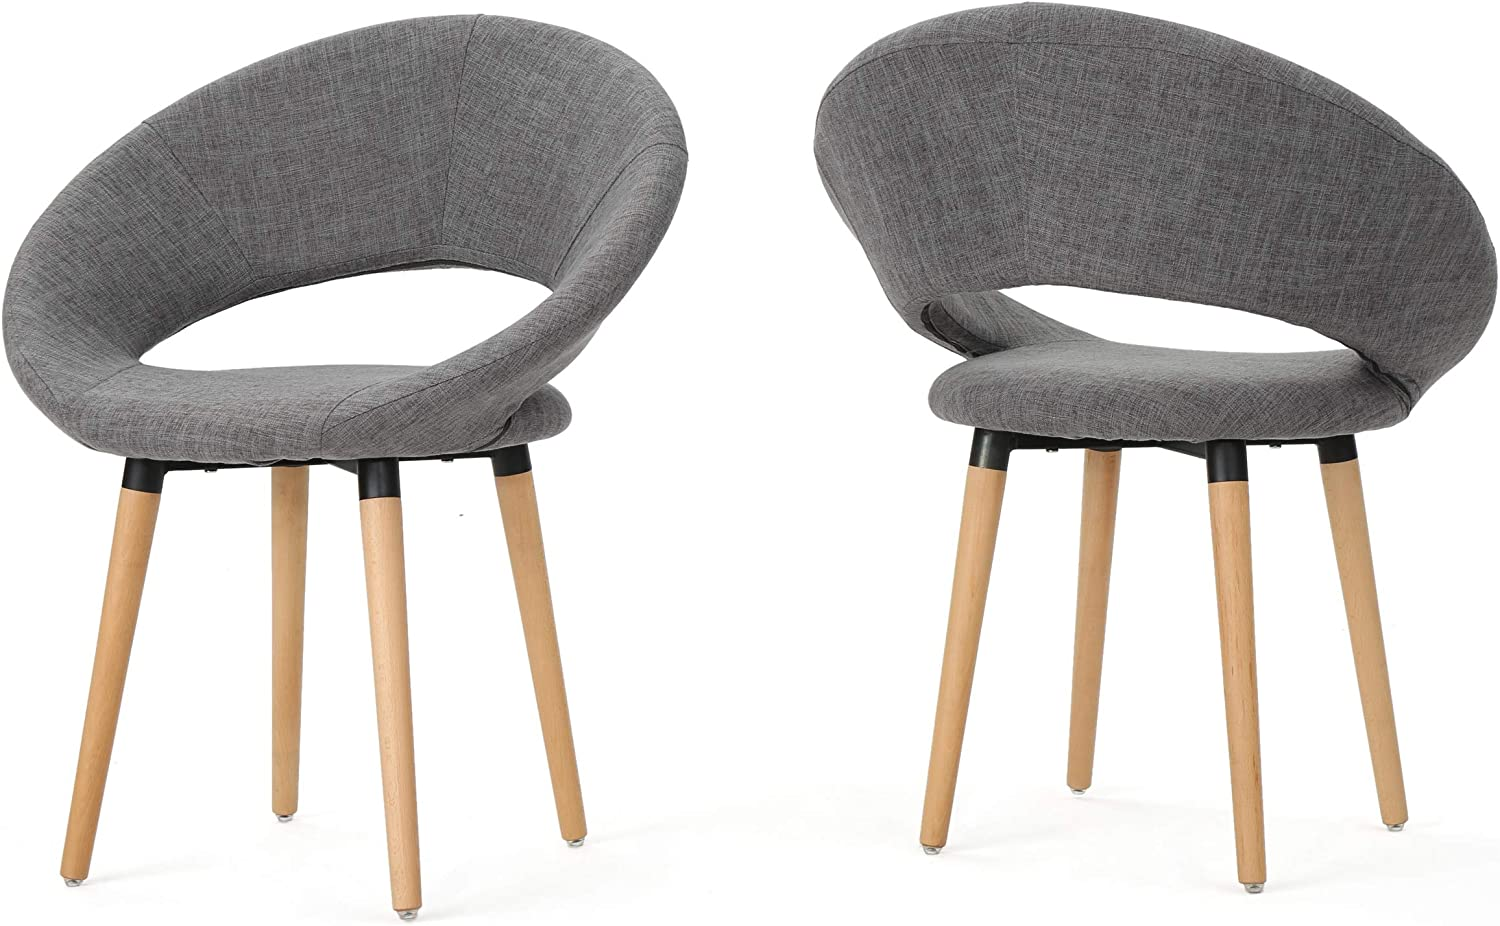 Christopher Knight Home Keegan Fabric Modern Dining Chairs, 2-Pcs Set, Light Grey